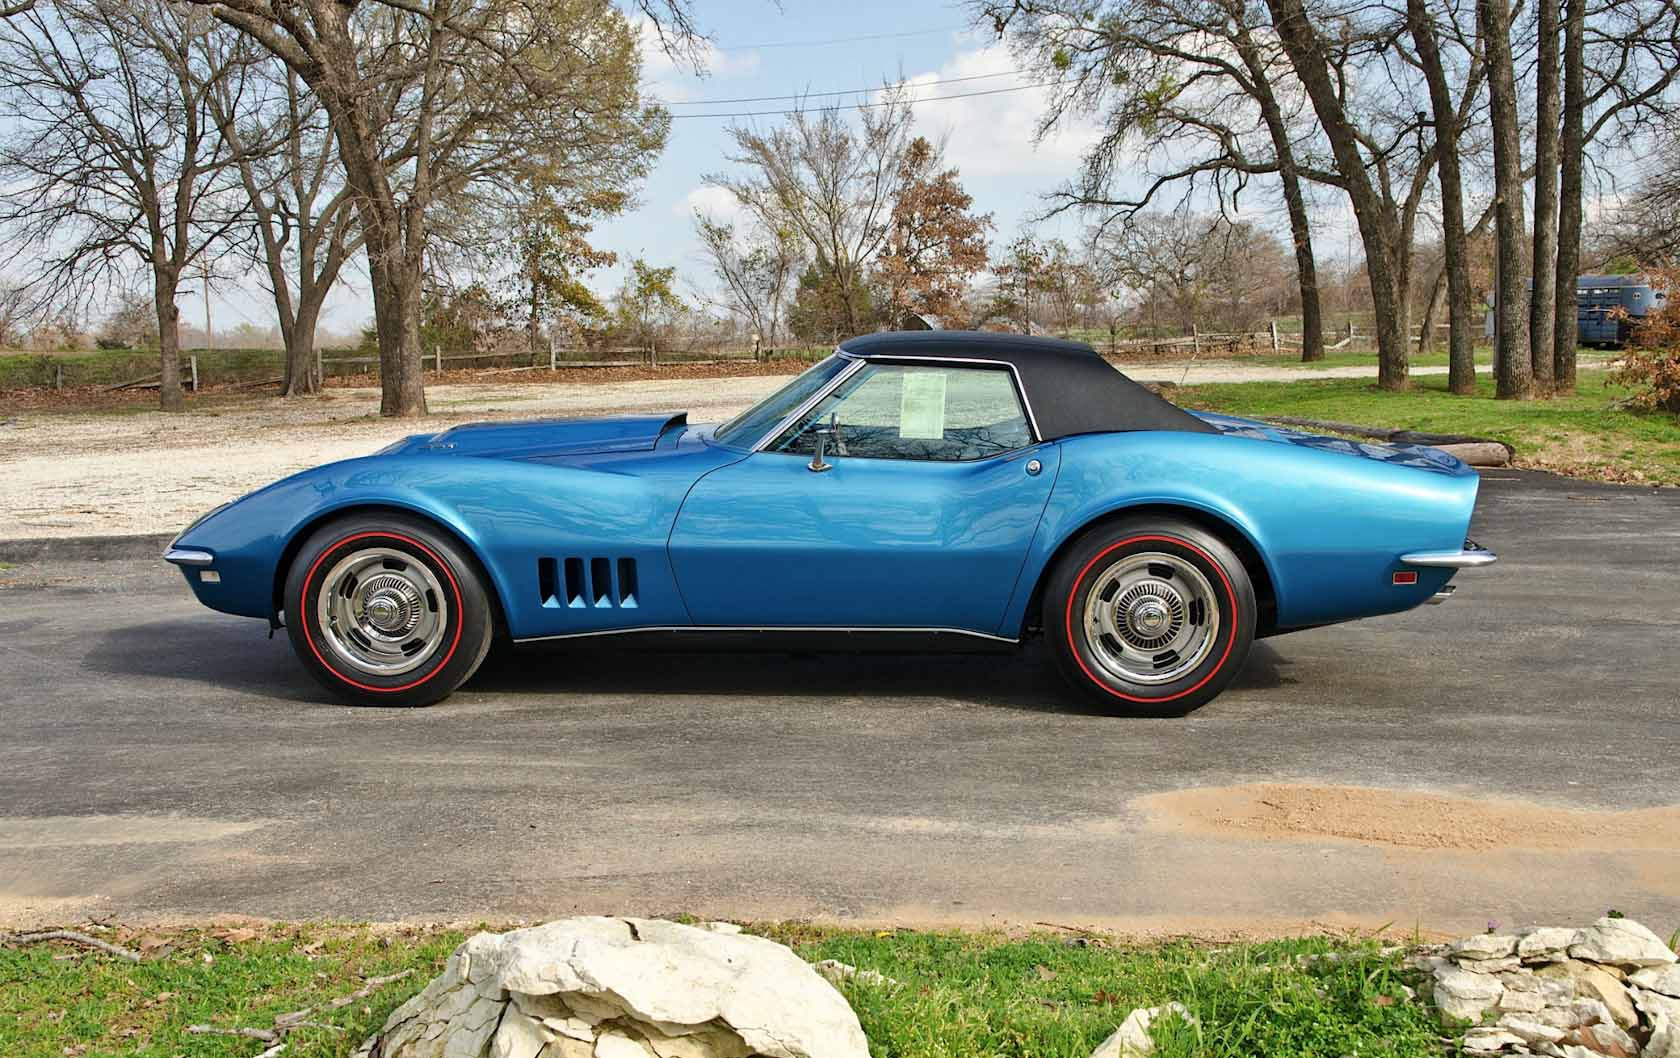 1968 c3 corvette image gallery pictures. Black Bedroom Furniture Sets. Home Design Ideas